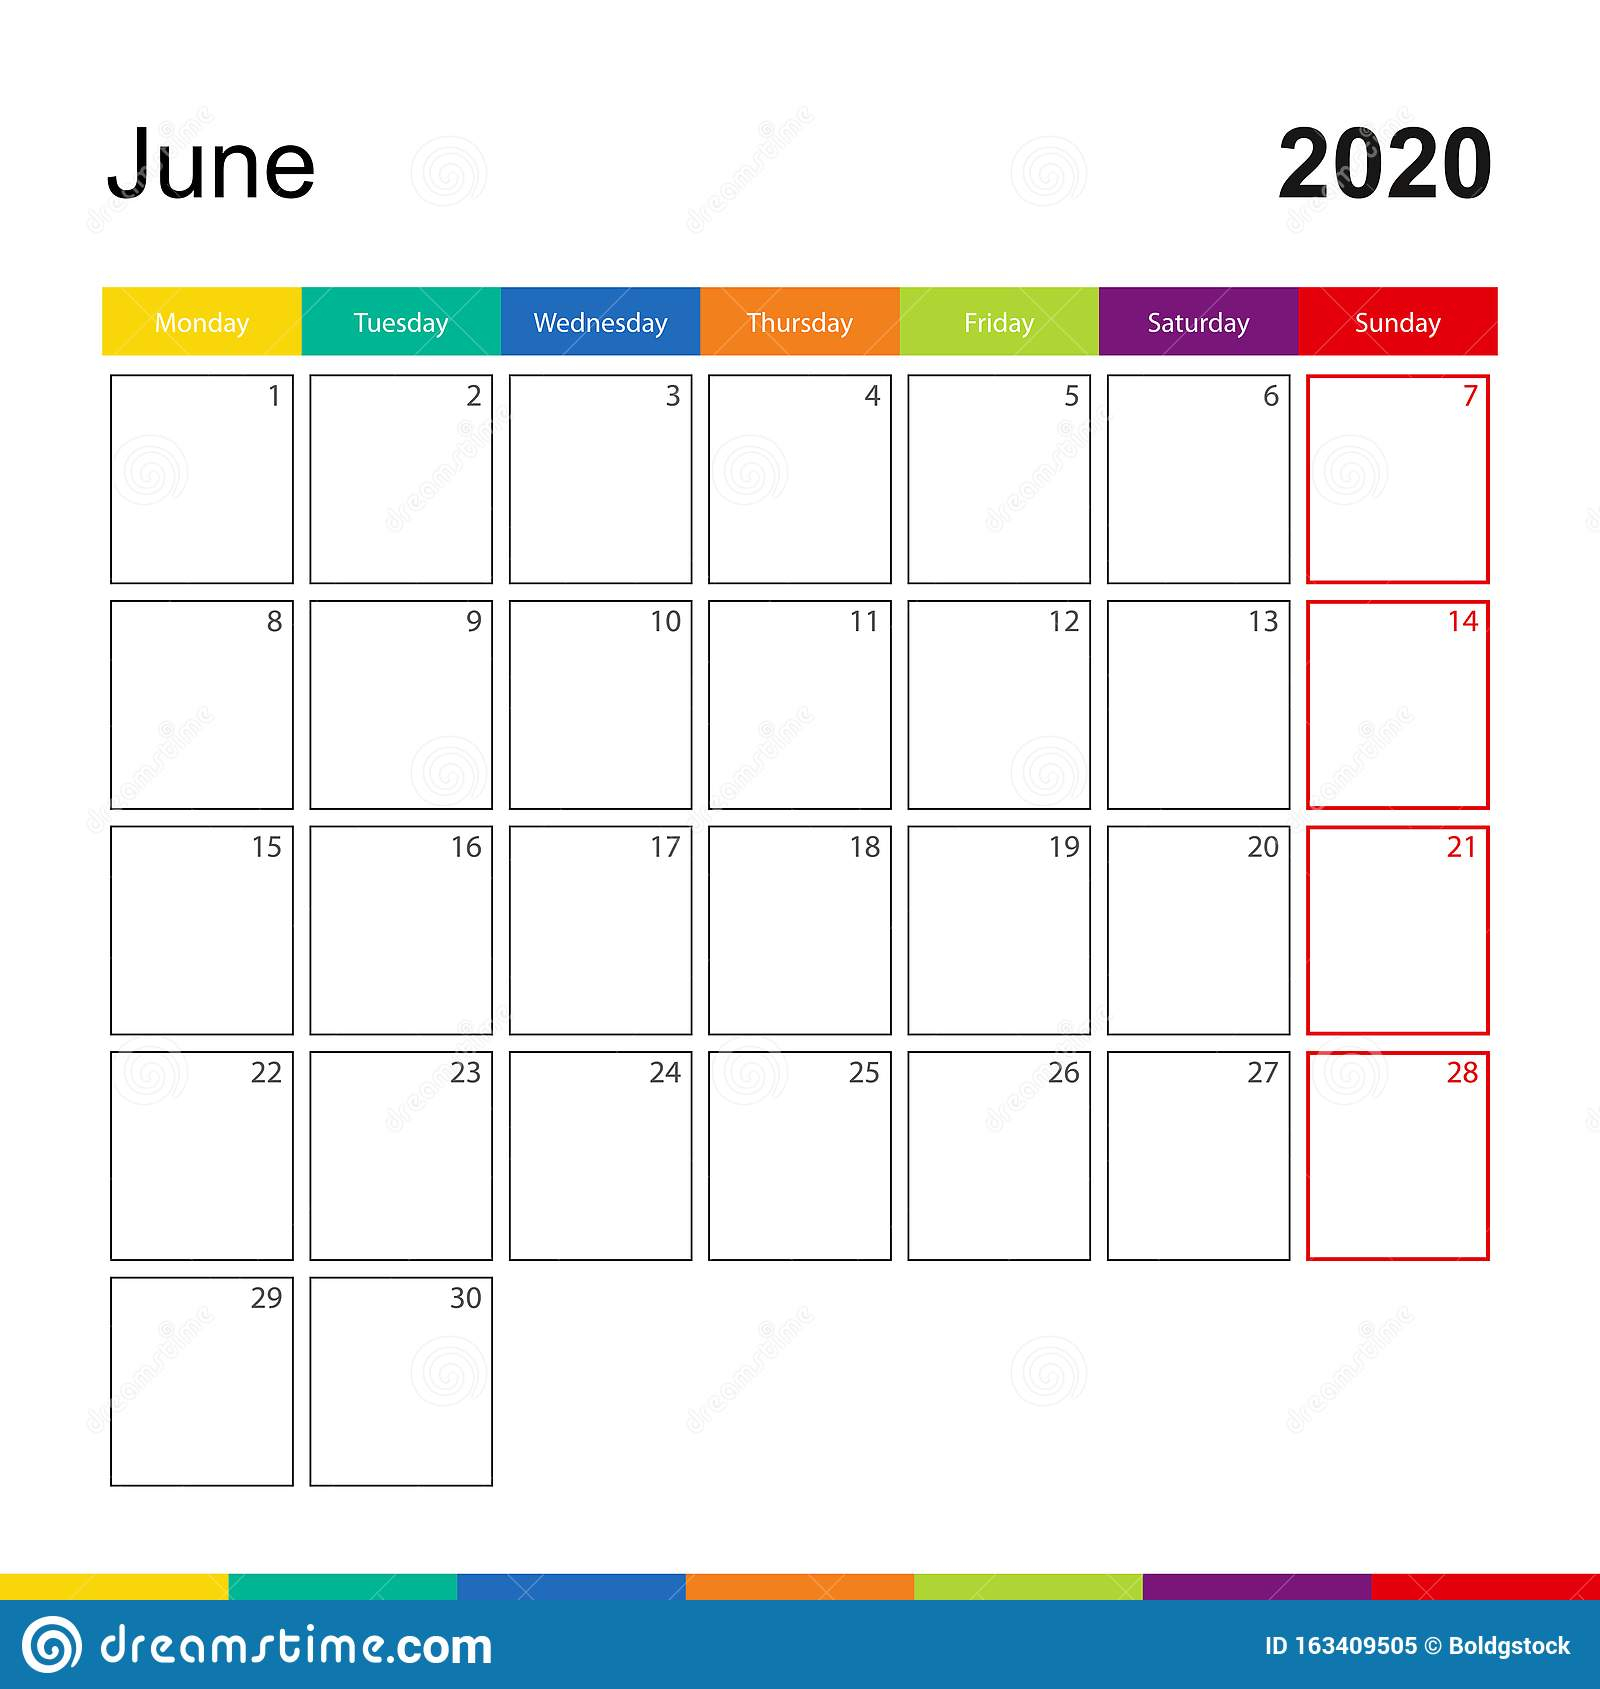 June 2020 Colorful Wall Calendar, Week Starts On Monday regarding Calendar Template Monday Through Friday